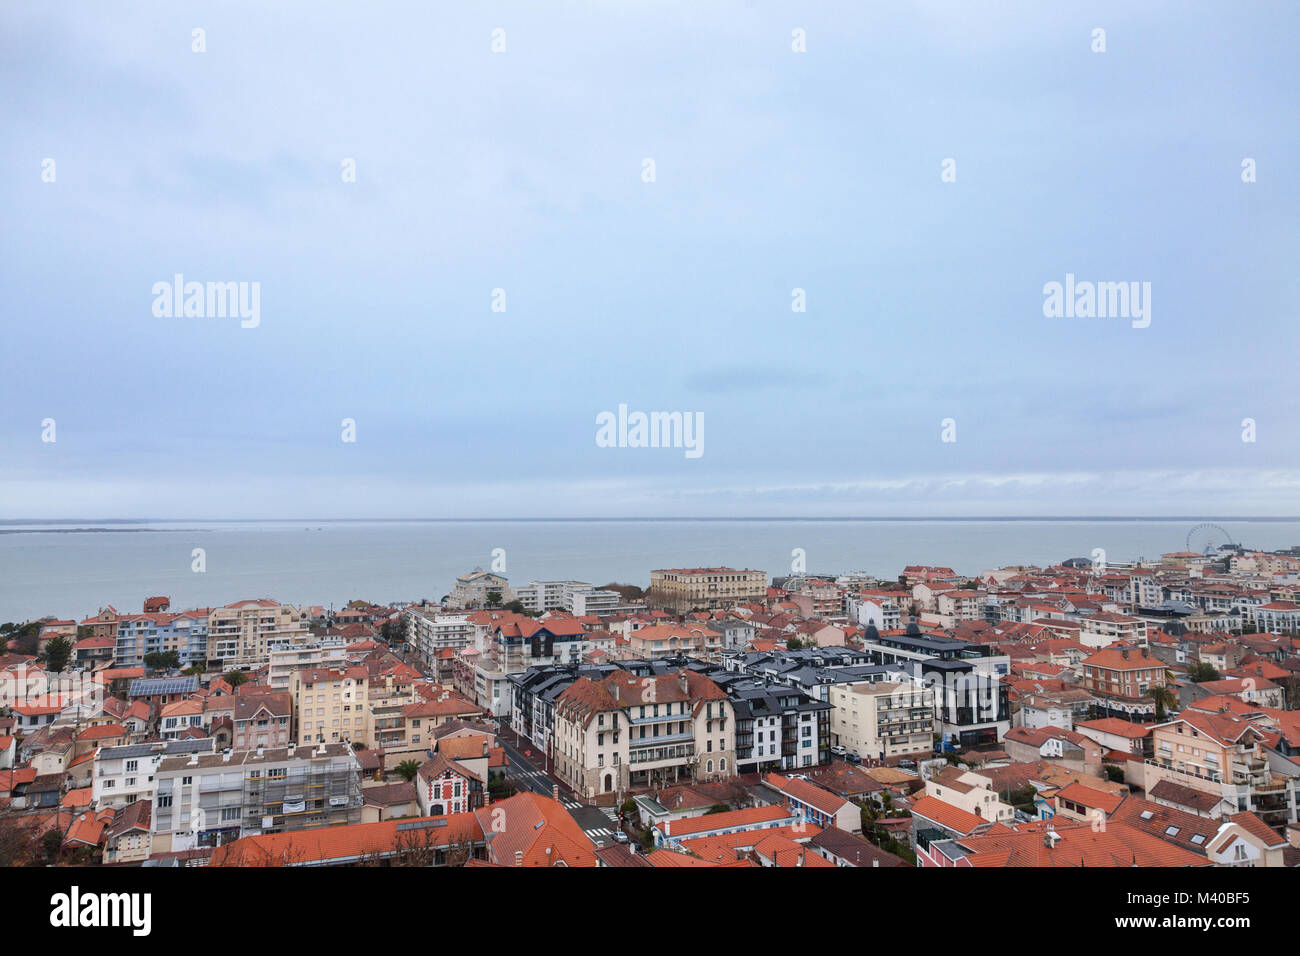 Aerial view of Arcachon, France, during a storm on a cloudy rainy day. Located in Arachon bay (bassin d'Arachon), - Stock Image